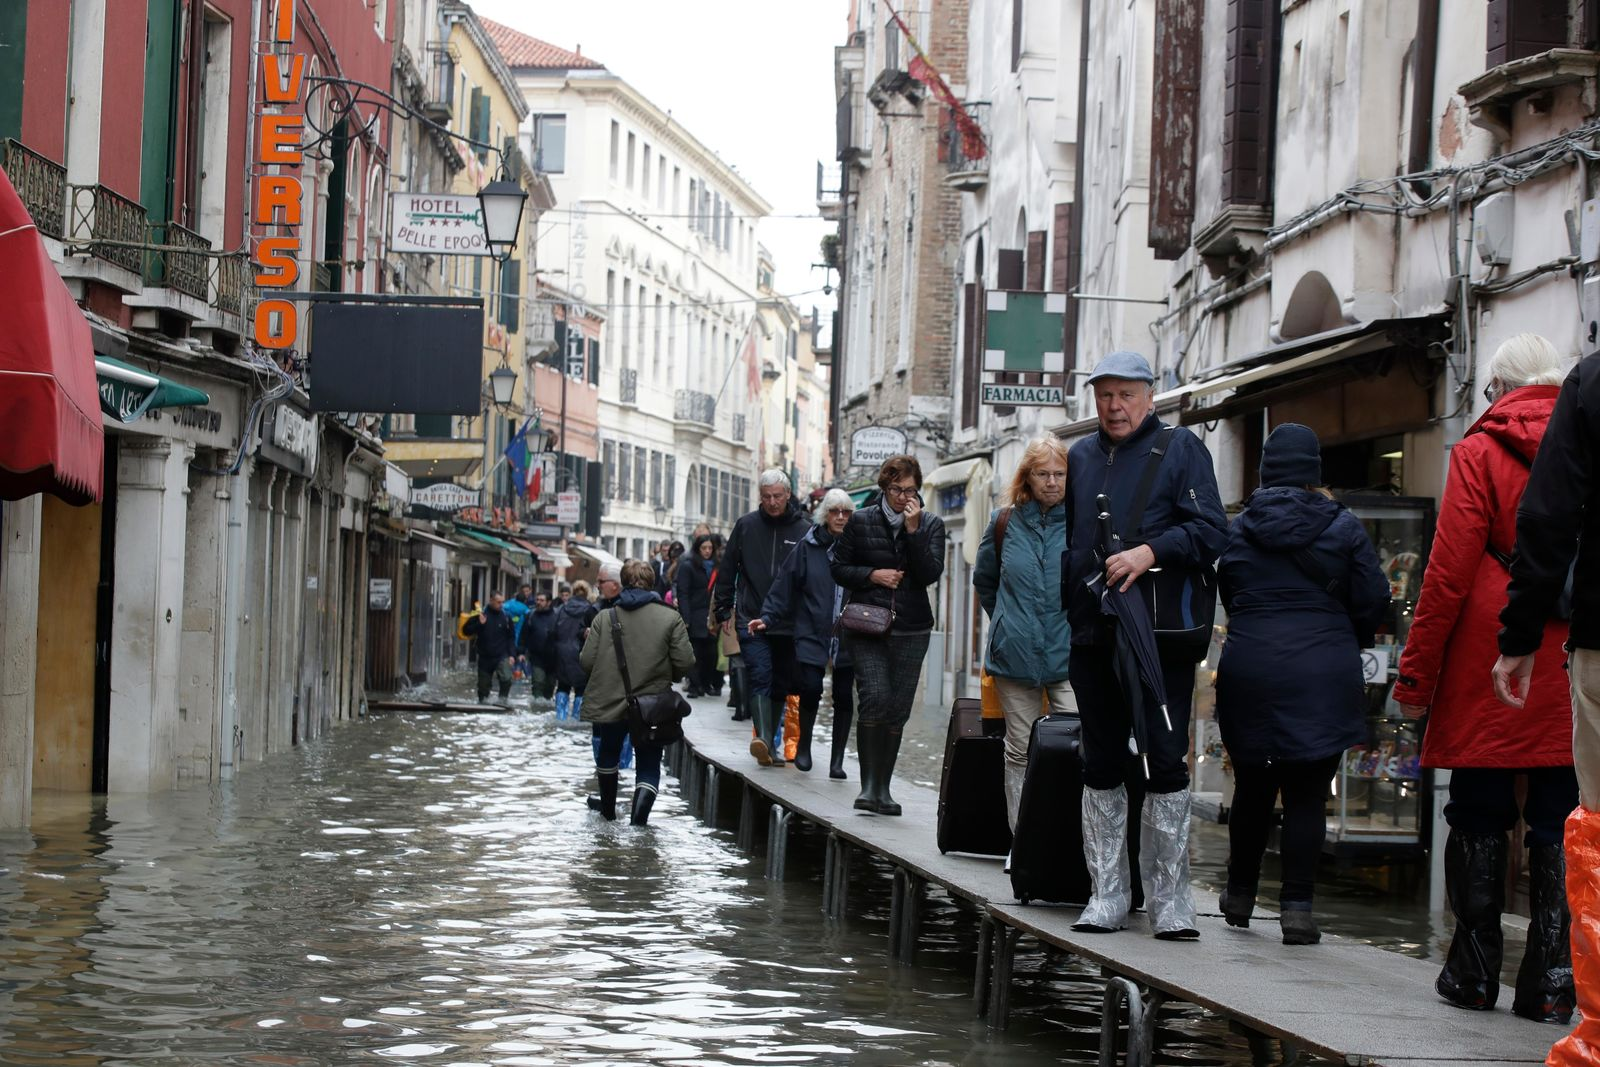 Tourist pull their suitcases along catwalks set up during a high tide, in Venice, Wednesday, Nov. 13, 2019.{ } (AP Photo/Luca Bruno)